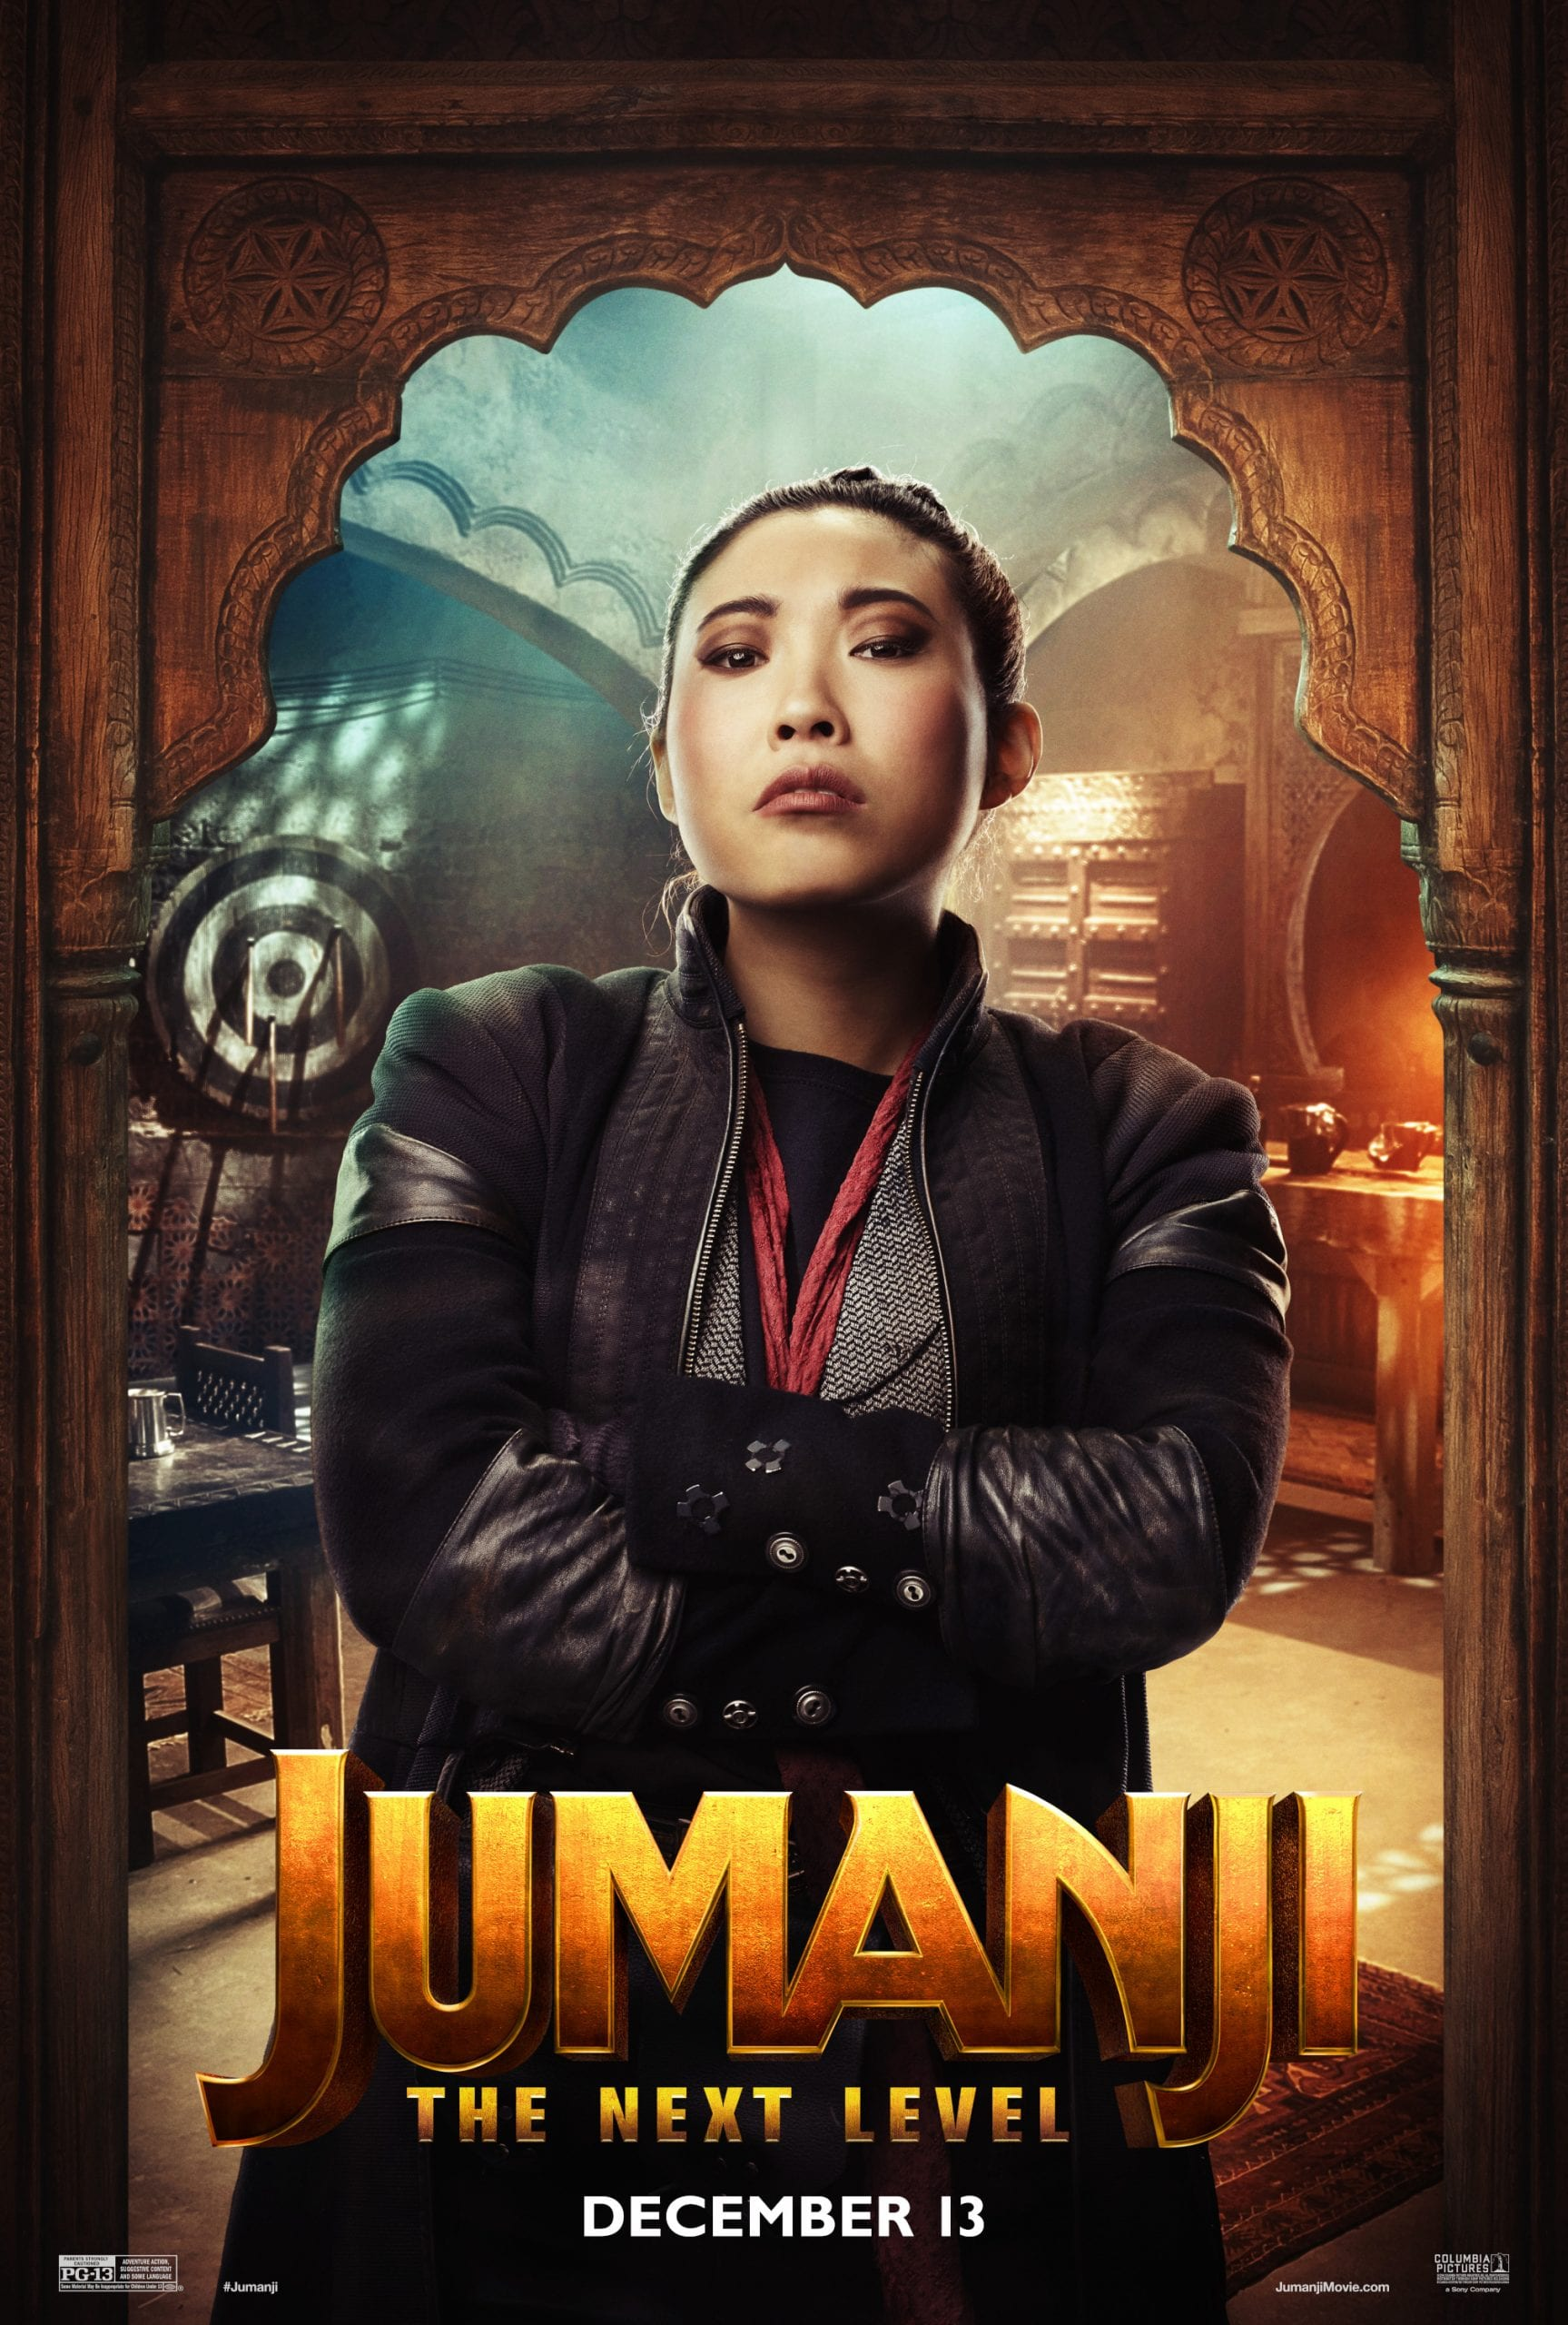 Jumanji The Next Level Character Posters Awkwafina as Ming Fleetfoot